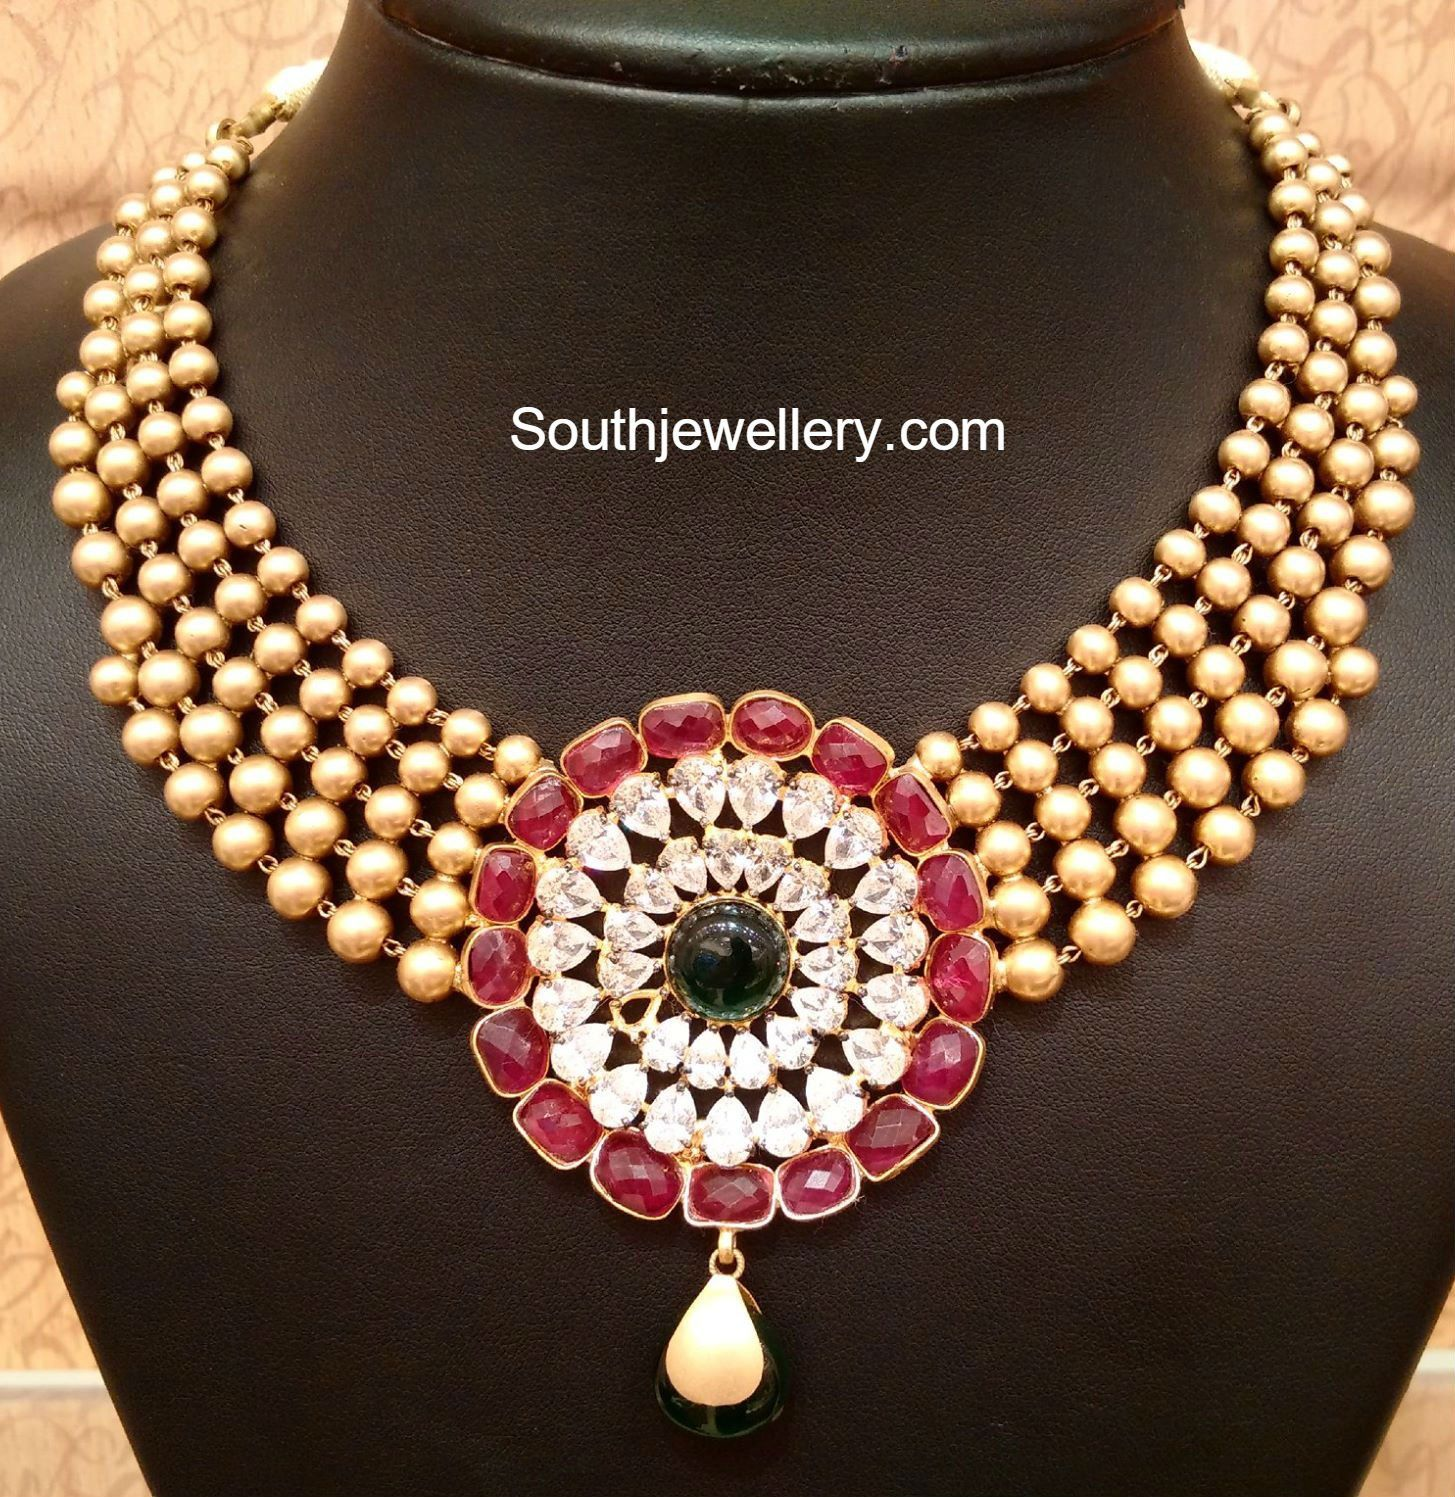 Gold Balls Necklace with Stones Pendant photo blouse